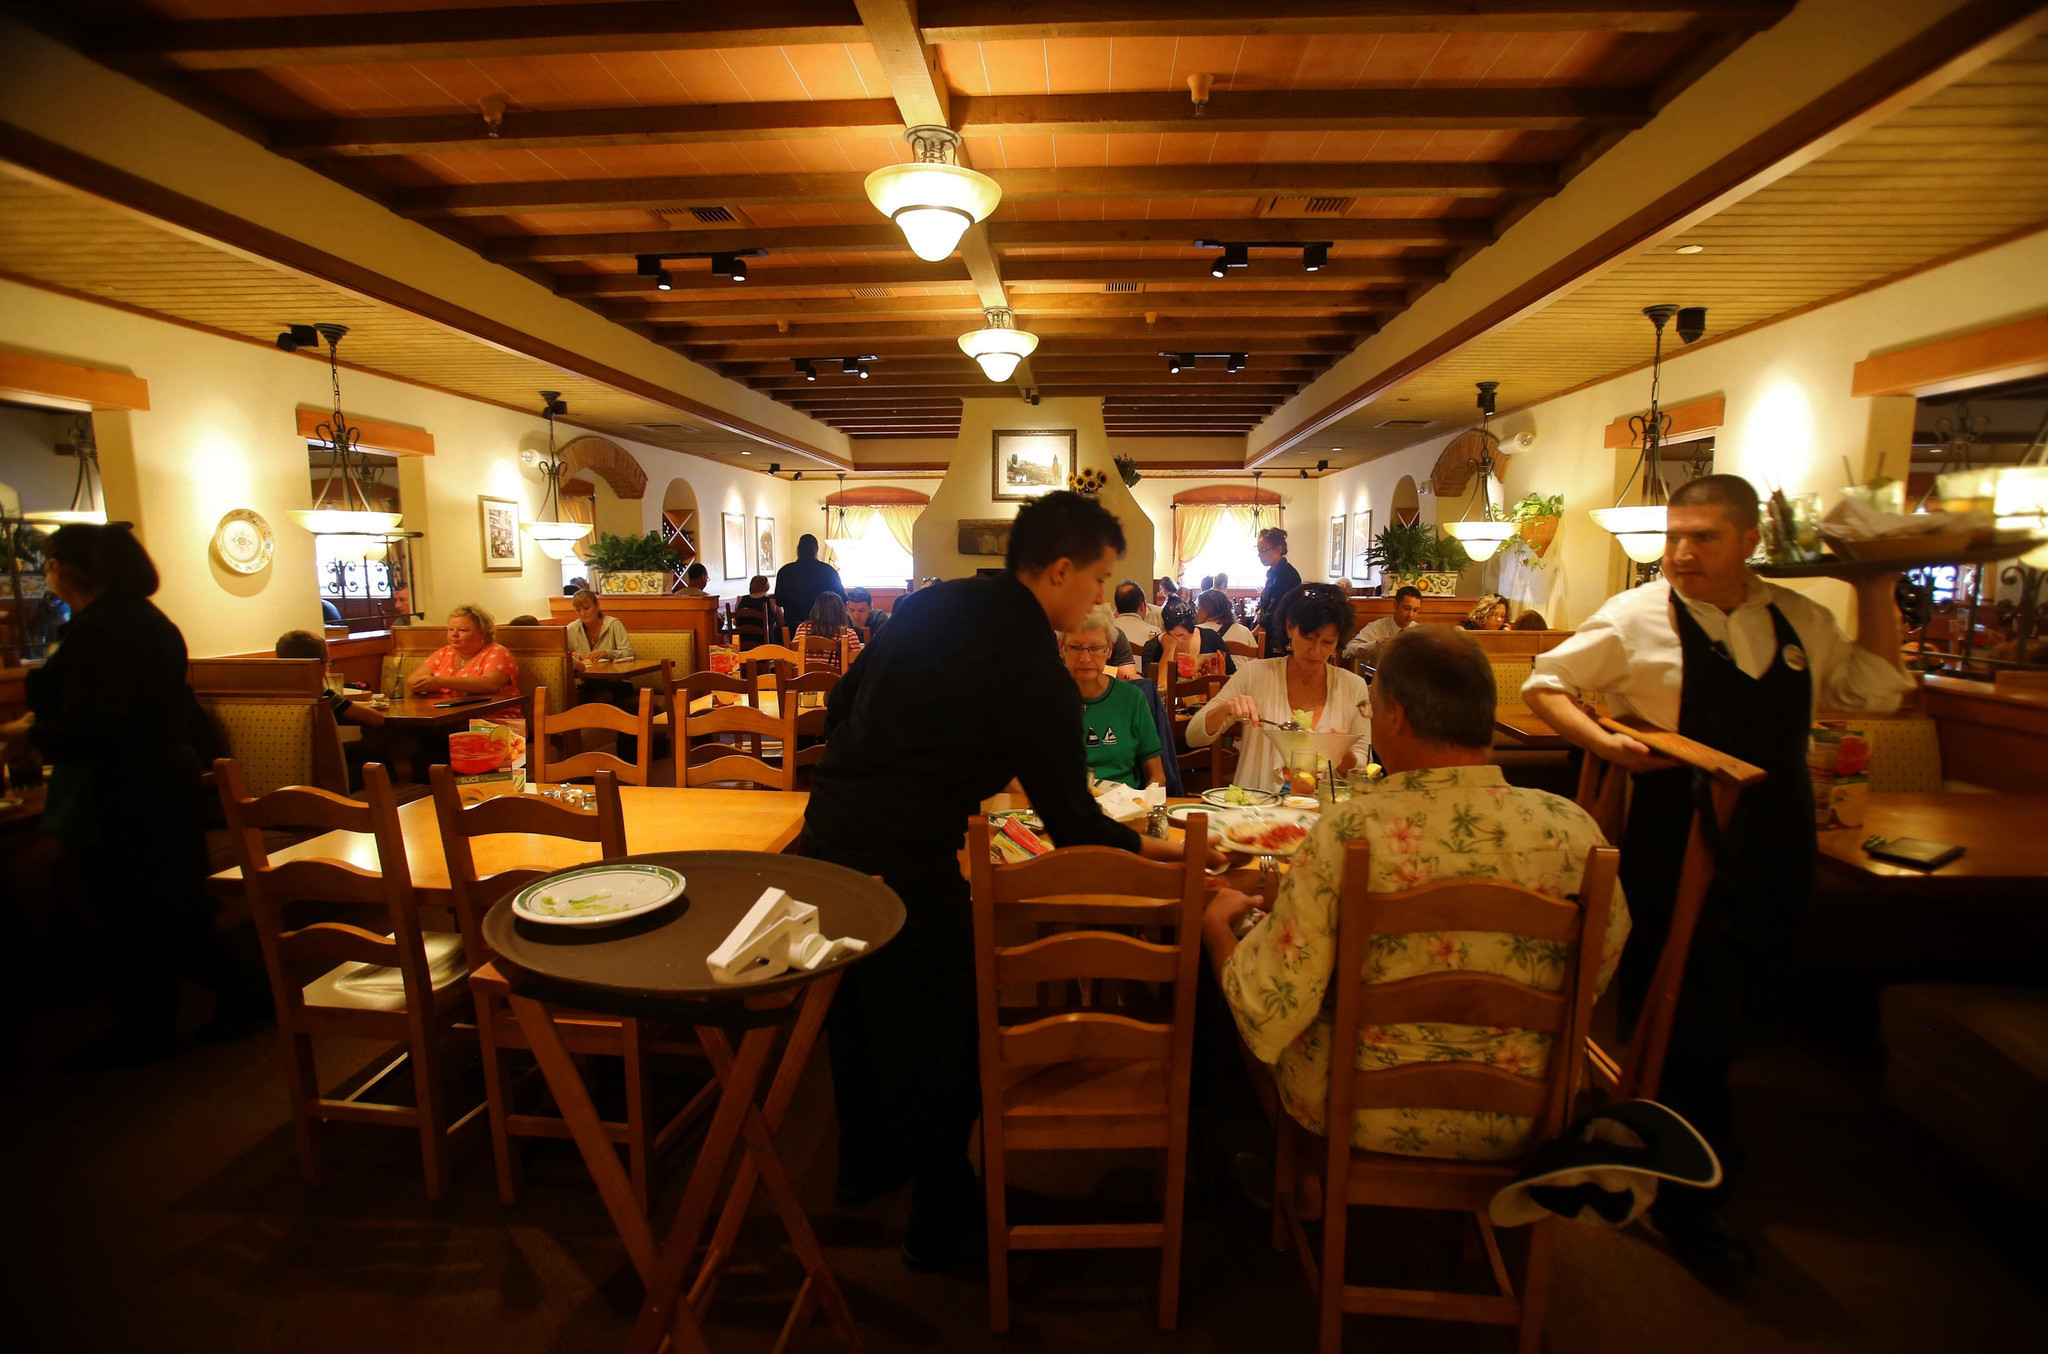 Olive Garden 39 S Latest Cost Cutting Plan Clean Carpet Less Often Chicago Tribune